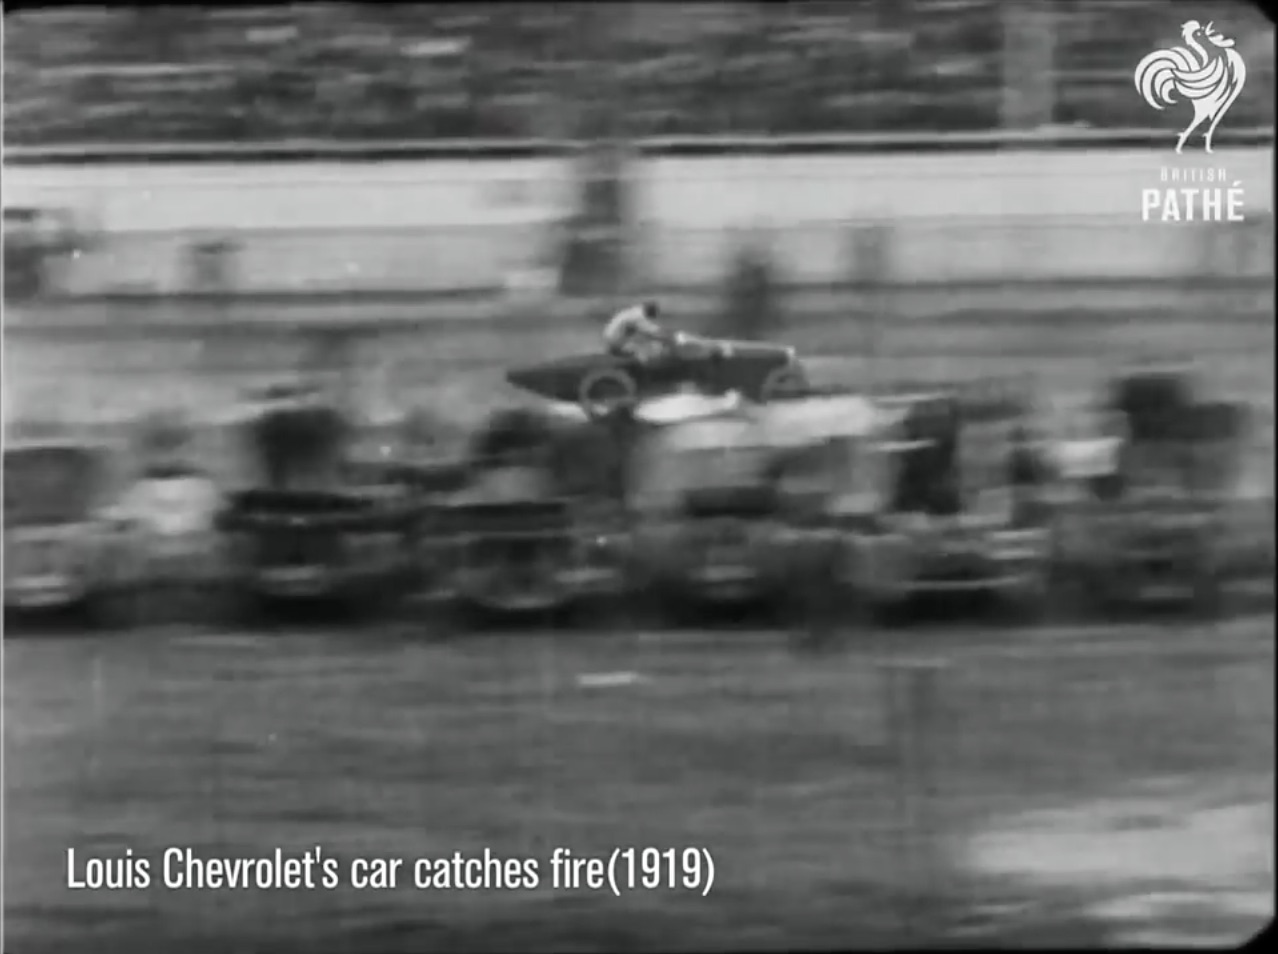 Classic YouTube: The First Recorded Automobile Racing Incident? Louis Chevrolet's 1919 Fire At Coney Island